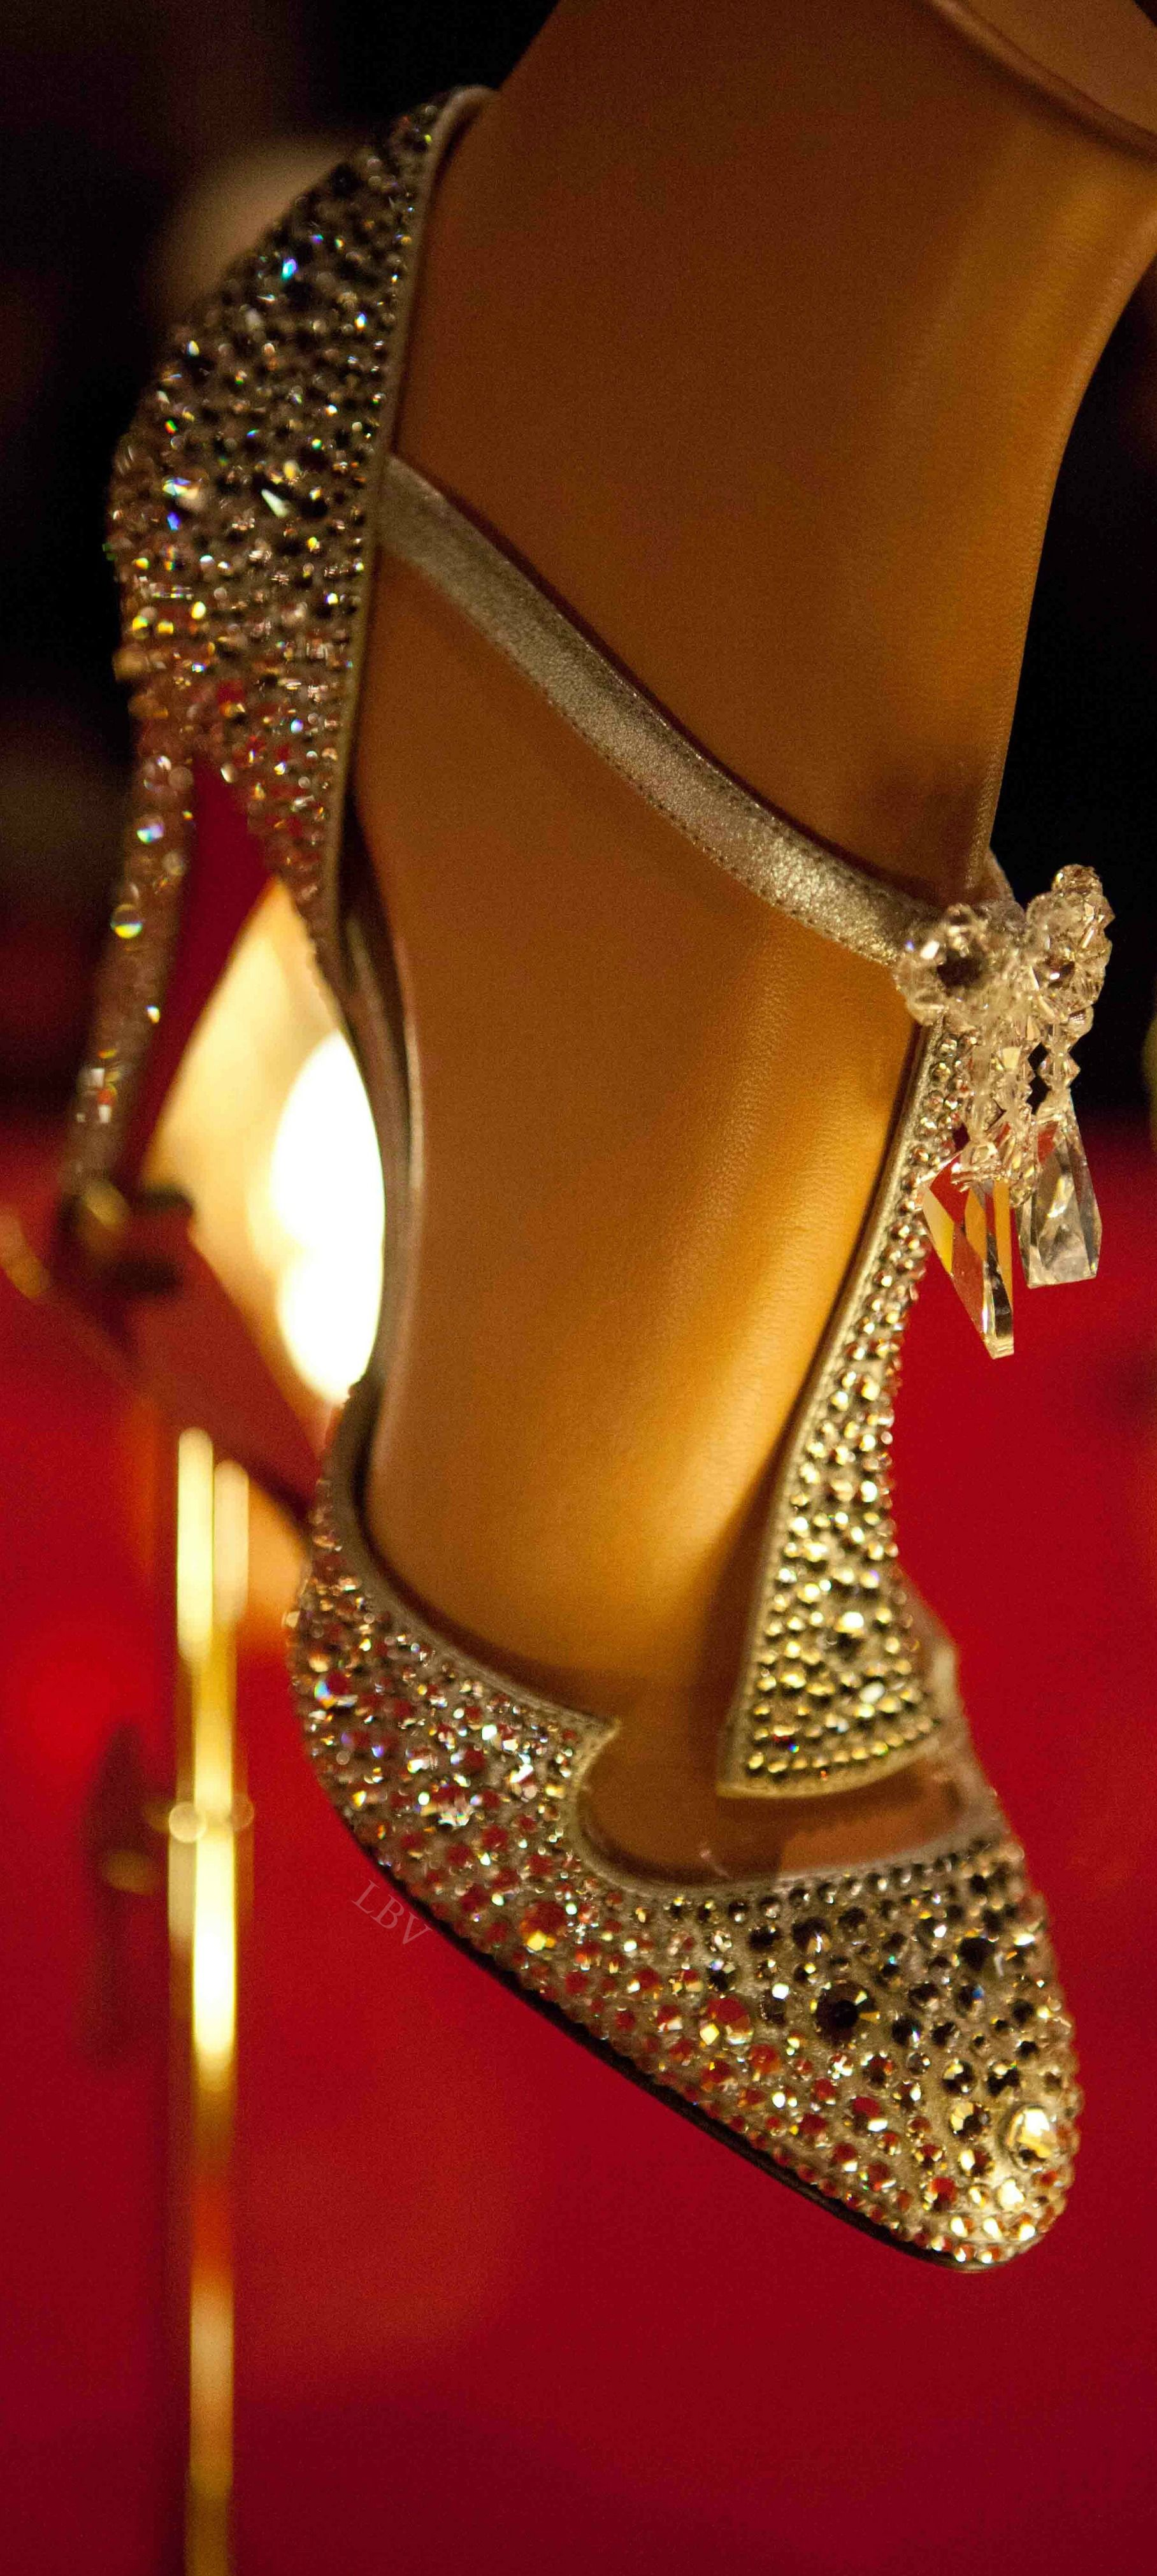 Great Gatsby style Louboutin   LBV ♥✤ www.SocietyOfWomenWhoLoveShoes.org https://www.facebook.com/SWWLS.Dallas Instagram @SocietyOfWomenWhoLoveShoes Twitter @ThePowerOfShoes